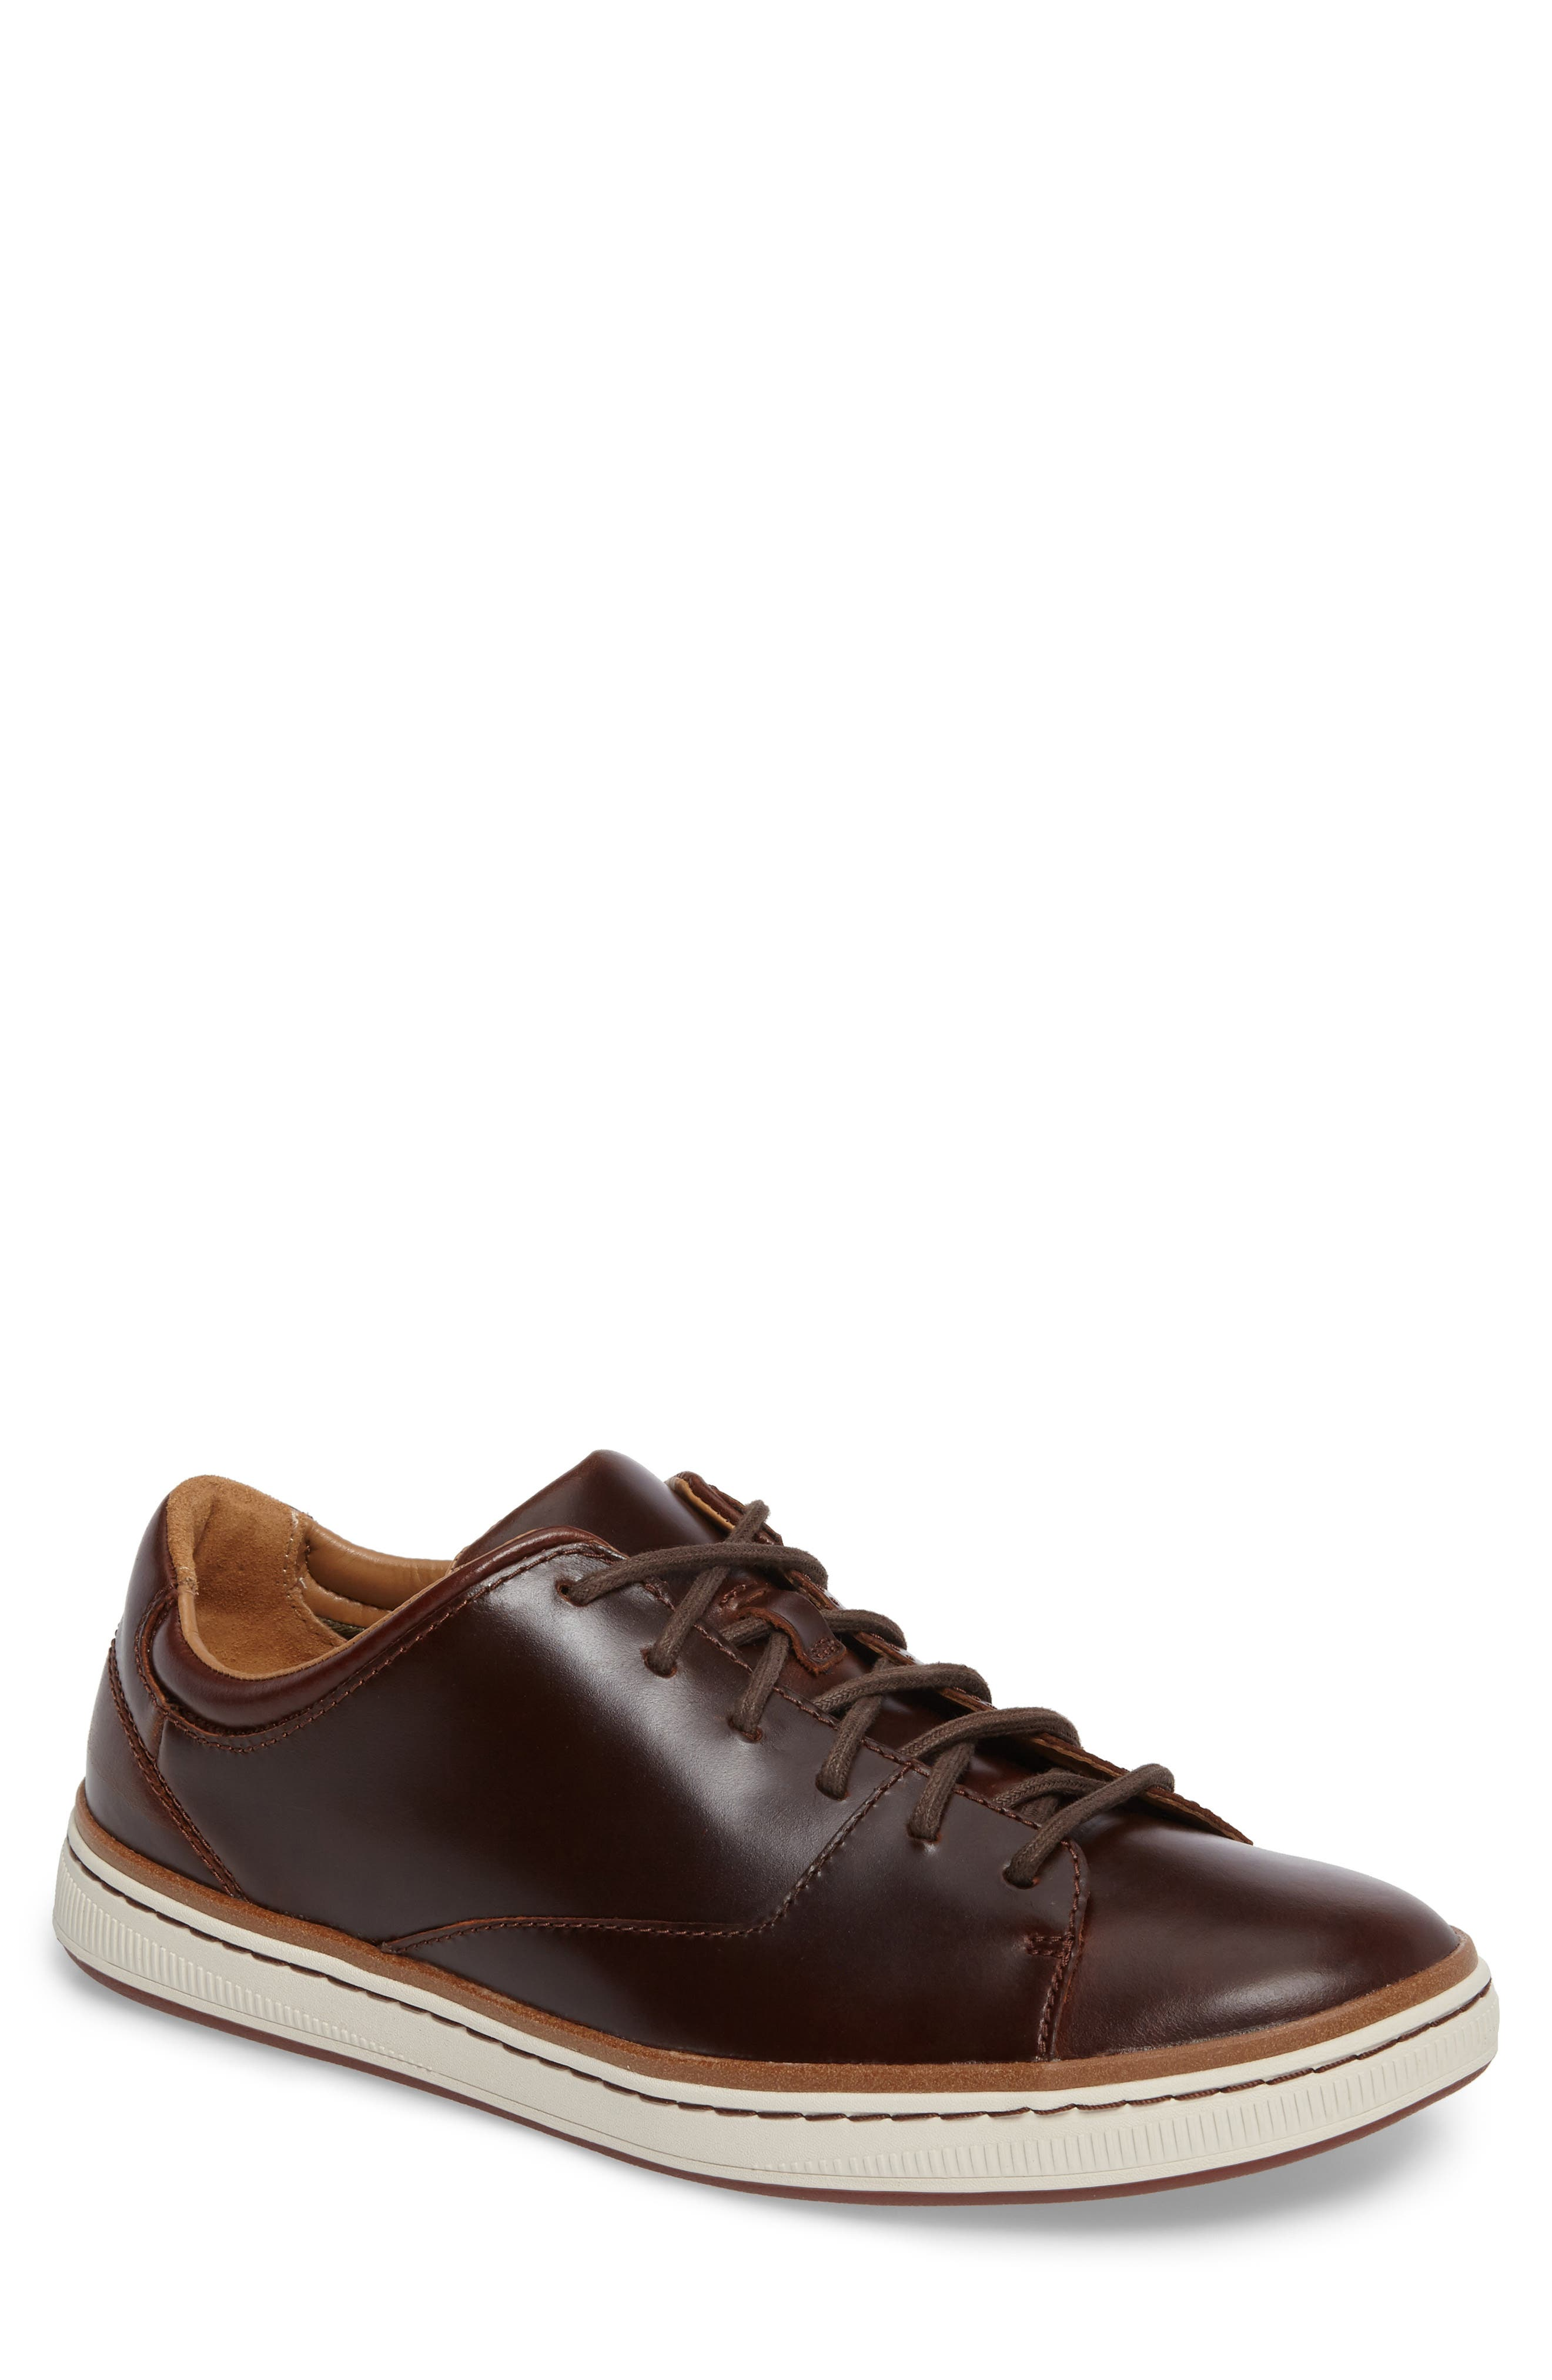 CLARKS<SUP>®</SUP> Norsen Lace Sneaker, Main, color, DARK TAN LEATHER